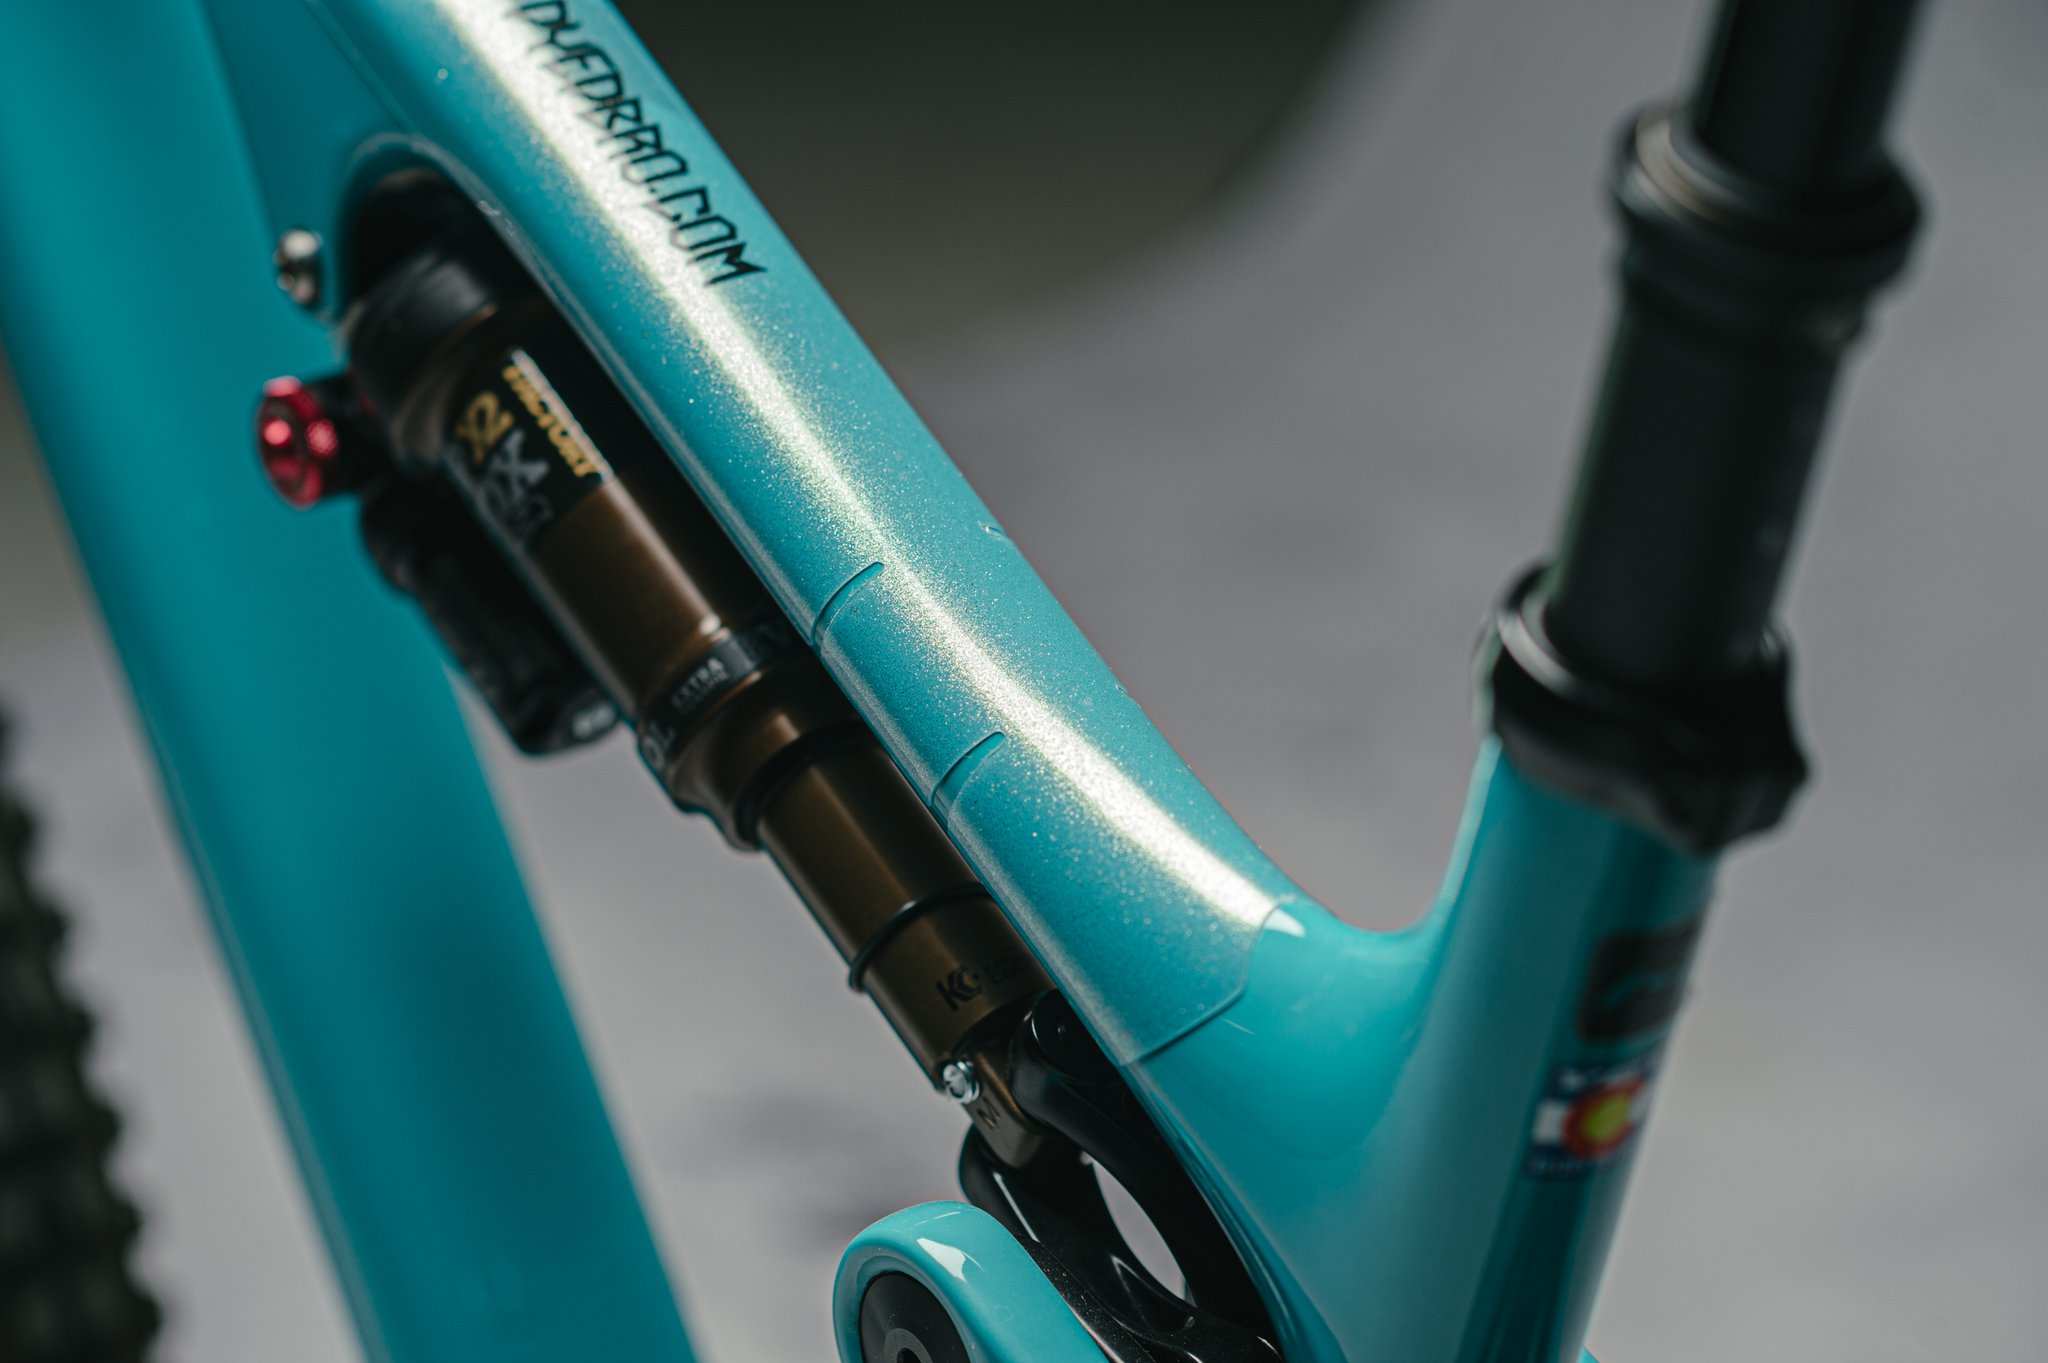 Mountain bikes are expensive. A bit of MTB frame protection will keep your bike looking new and prevent damage.